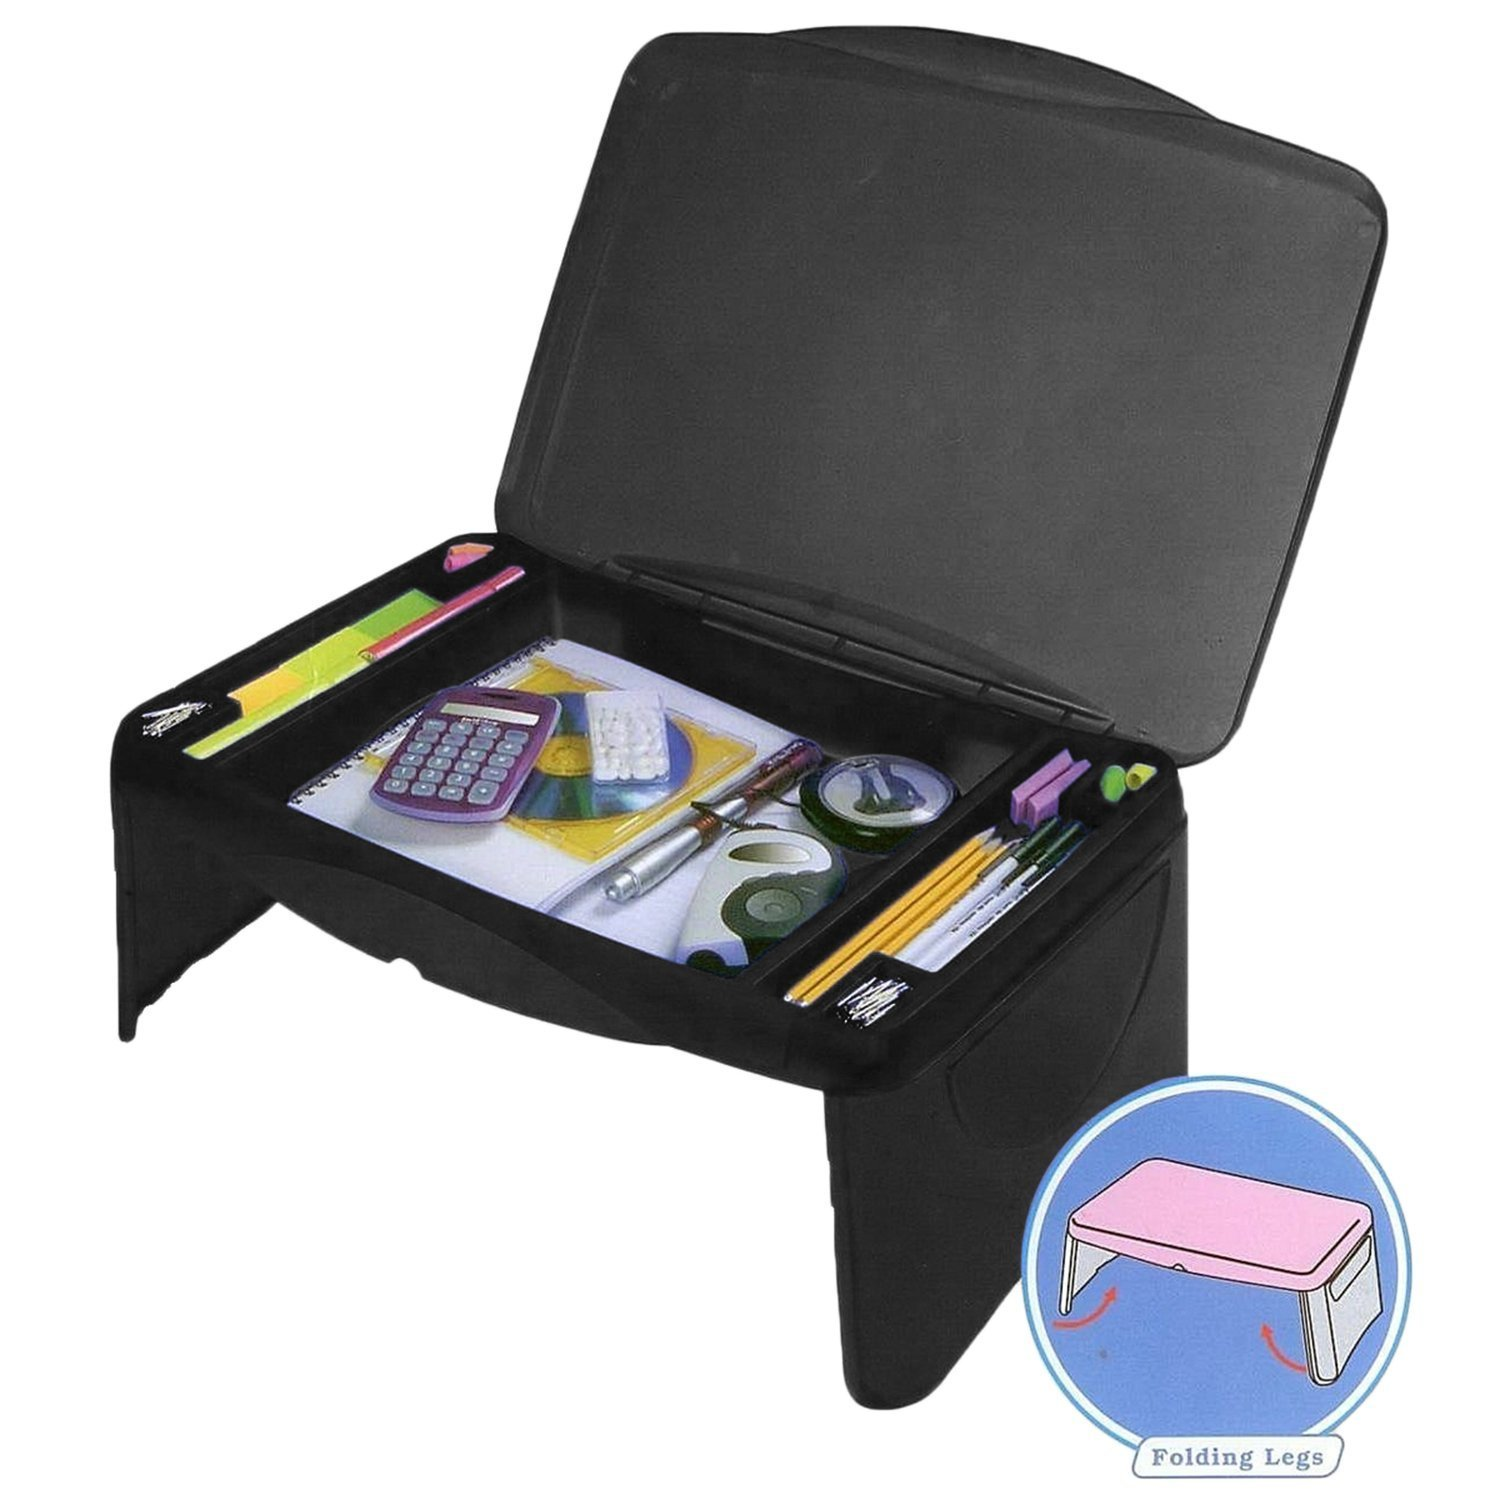 a plastic, black bed tray table with a hidden compartment holding stationary sitting on a flat surface on a white background